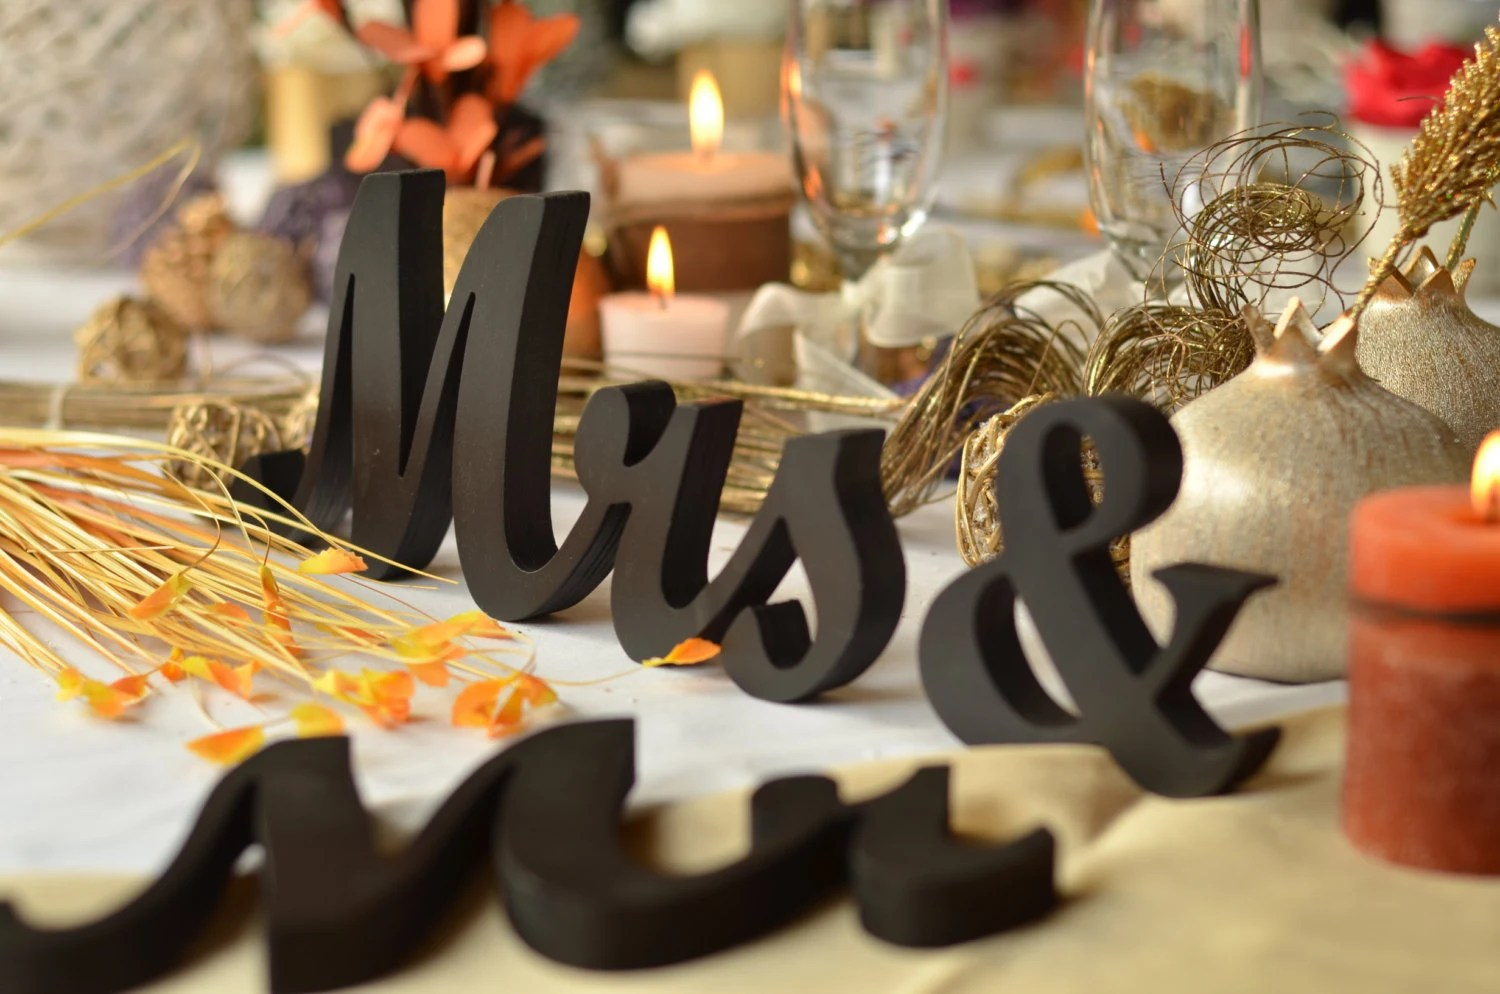 Mr & Mrs Wedding Signs For Sweetheart Table Wooden Letters